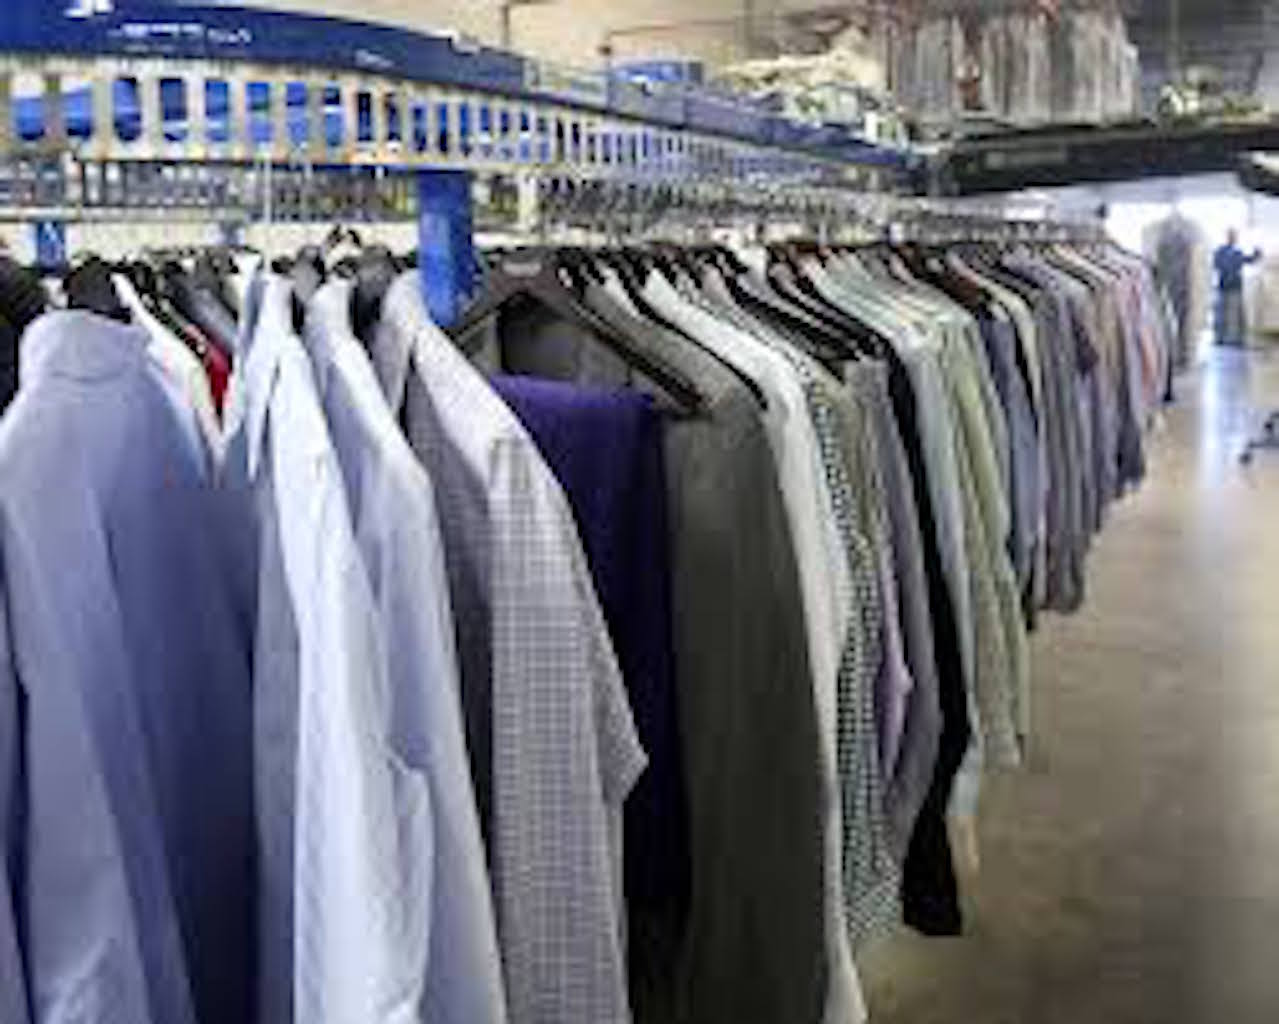 Profitable Dry Cleaners in Solid Market Image  Businesses for Sale Image